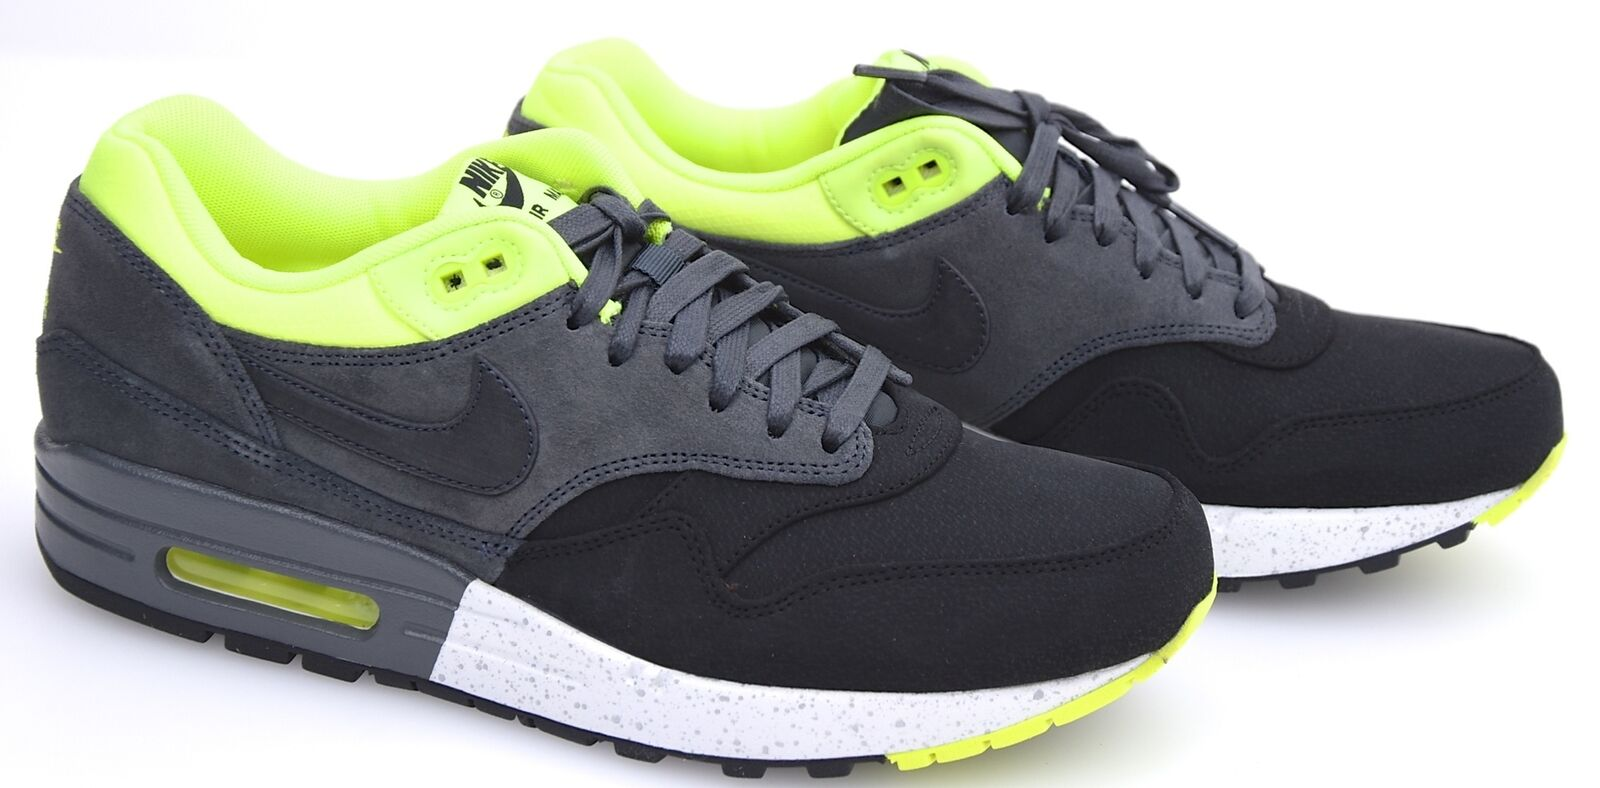 NIKE MAN SNEAKER SHOES CASUAL FREE TIME CODE AIR MAX 1 PRM 512033 002